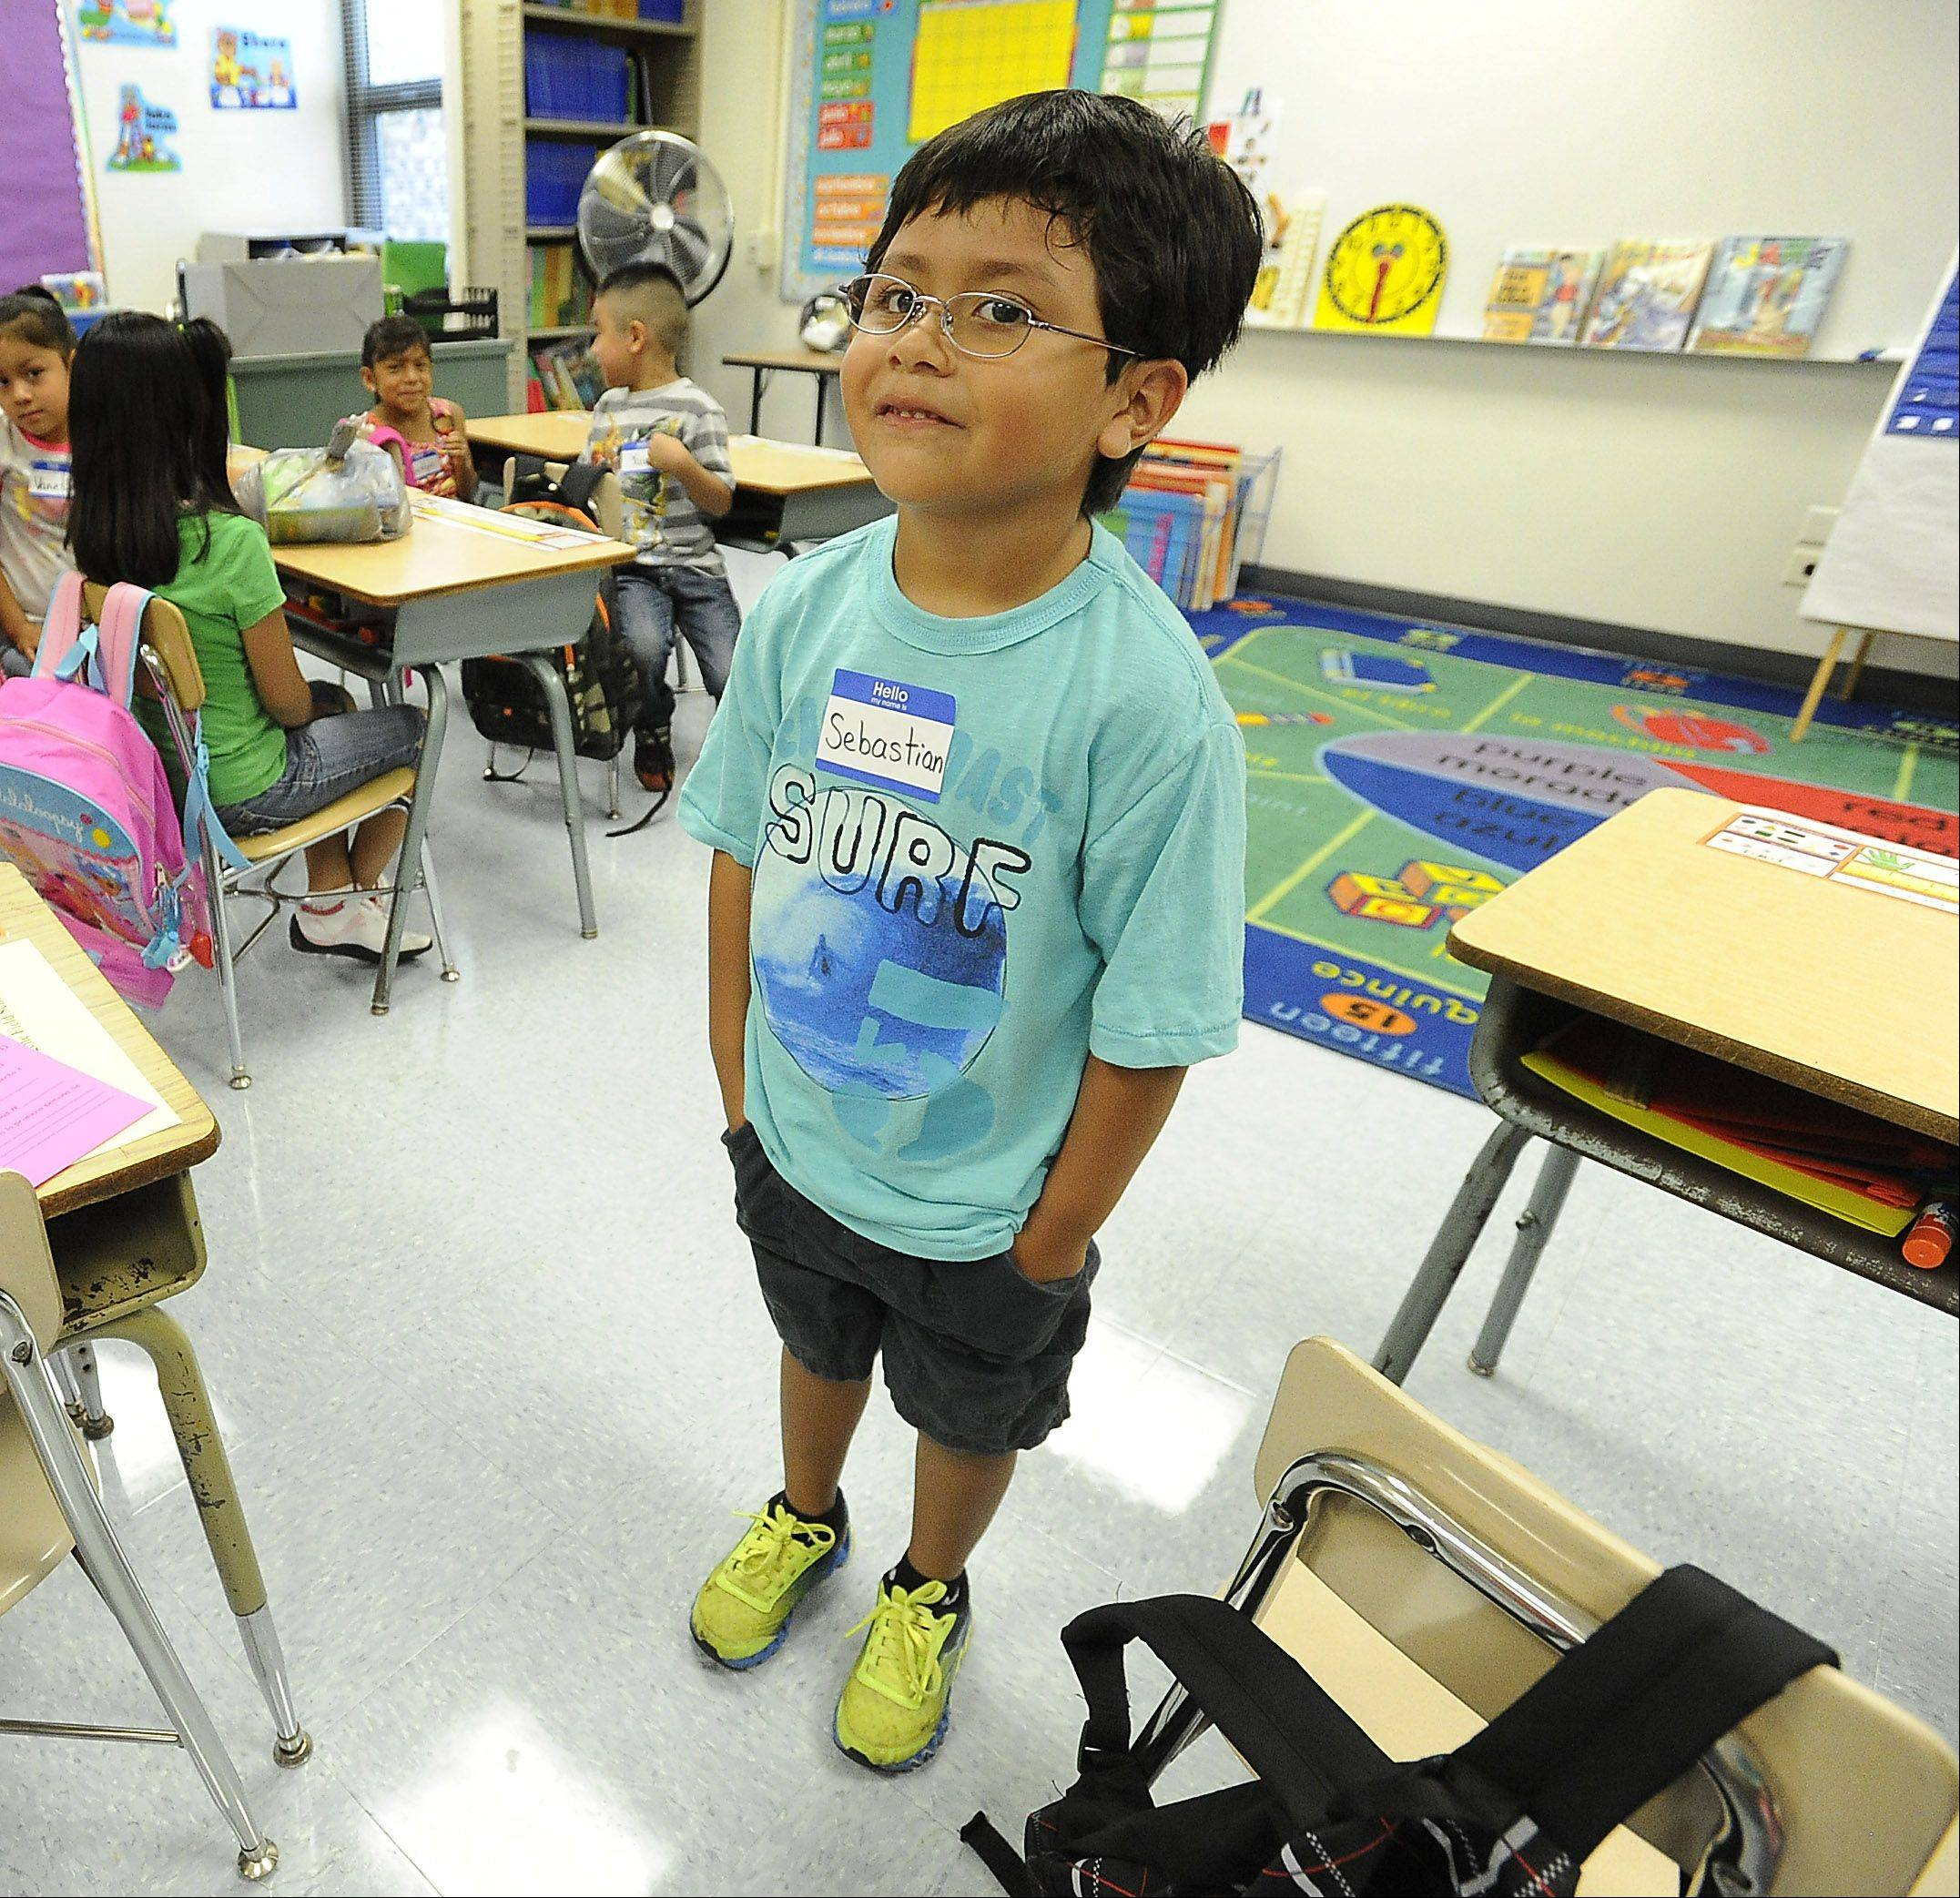 Sebastian Castillo celebrates his birthday on the first day back in the first grade at Field Elementary School in Wheeling on Wednesday.